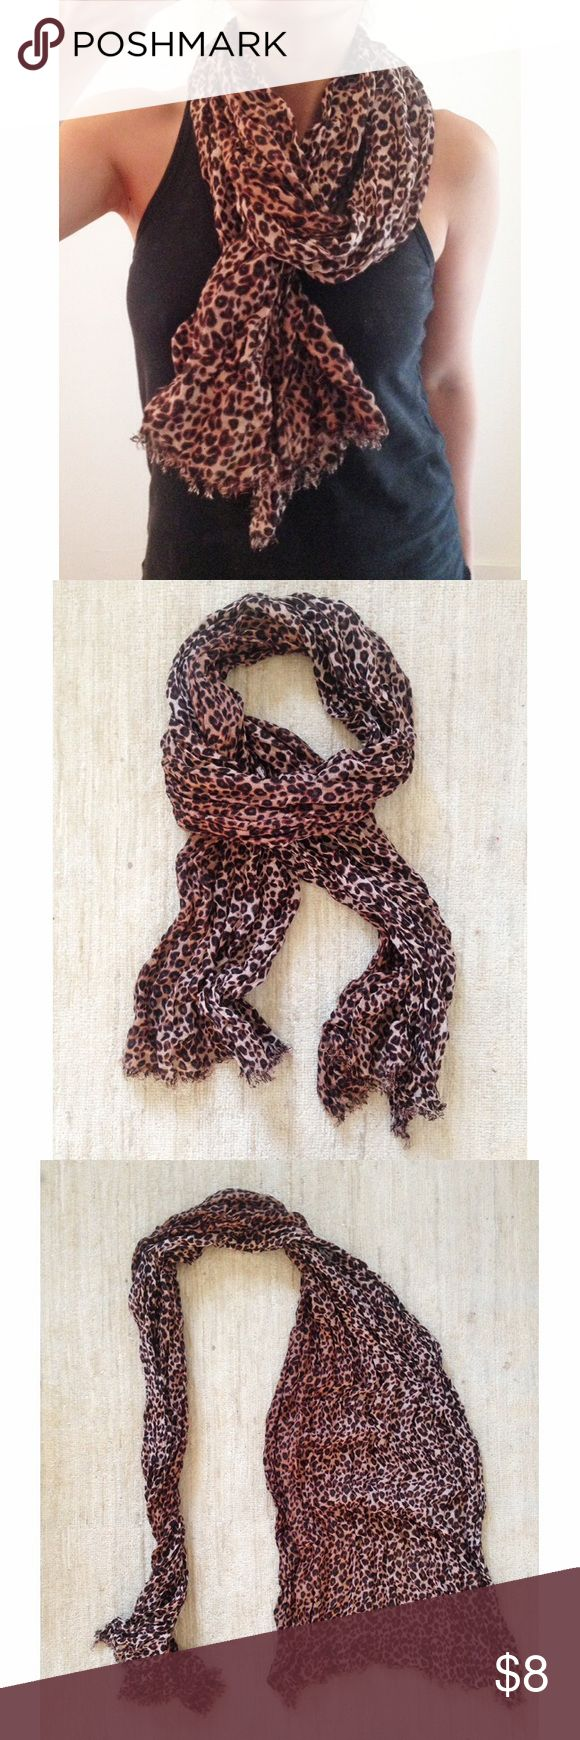 "Leopard print scarf Frayed edge large leopard print scarf. Width approx. 23"" Pet free, smoke free home. H&M Accessories Scarves & Wraps"